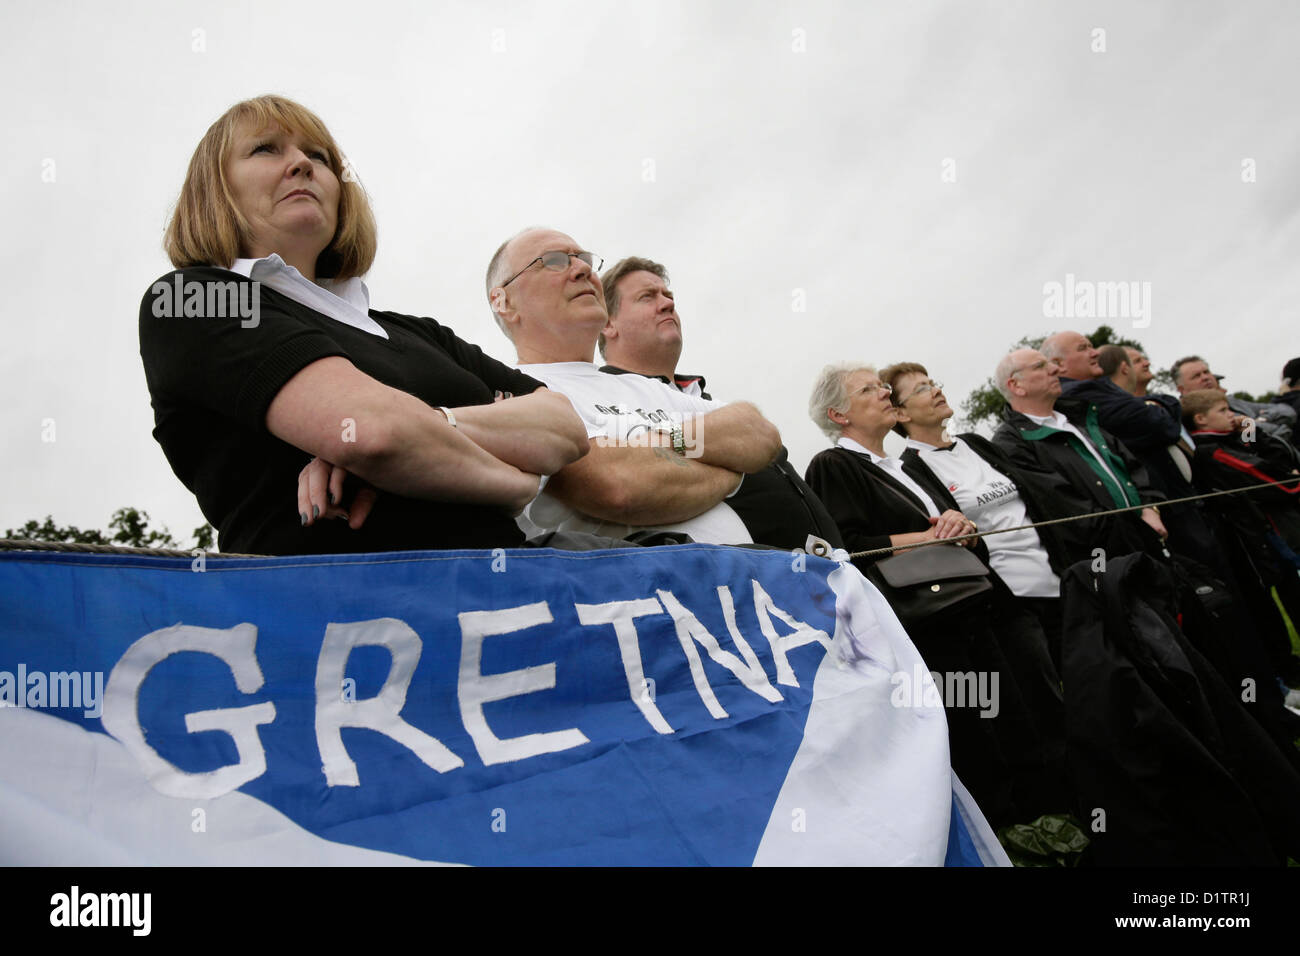 Gretna football fans watch their team play Kelso - Stock Image